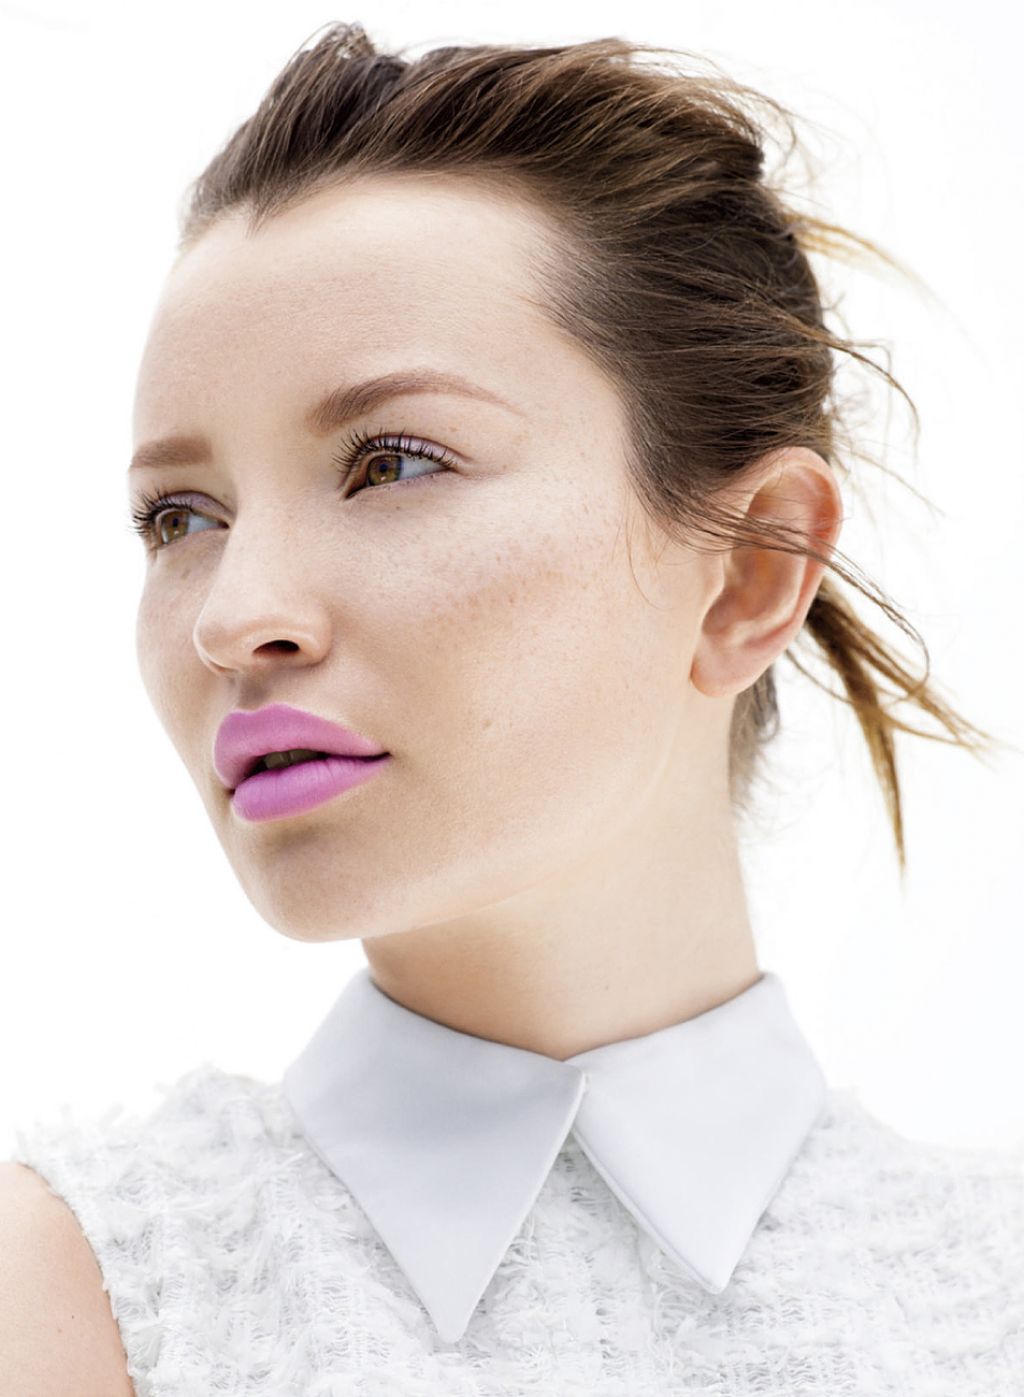 Emily Browning - Beau Grealy Photoshoot for InStyle (Australia) March 2014